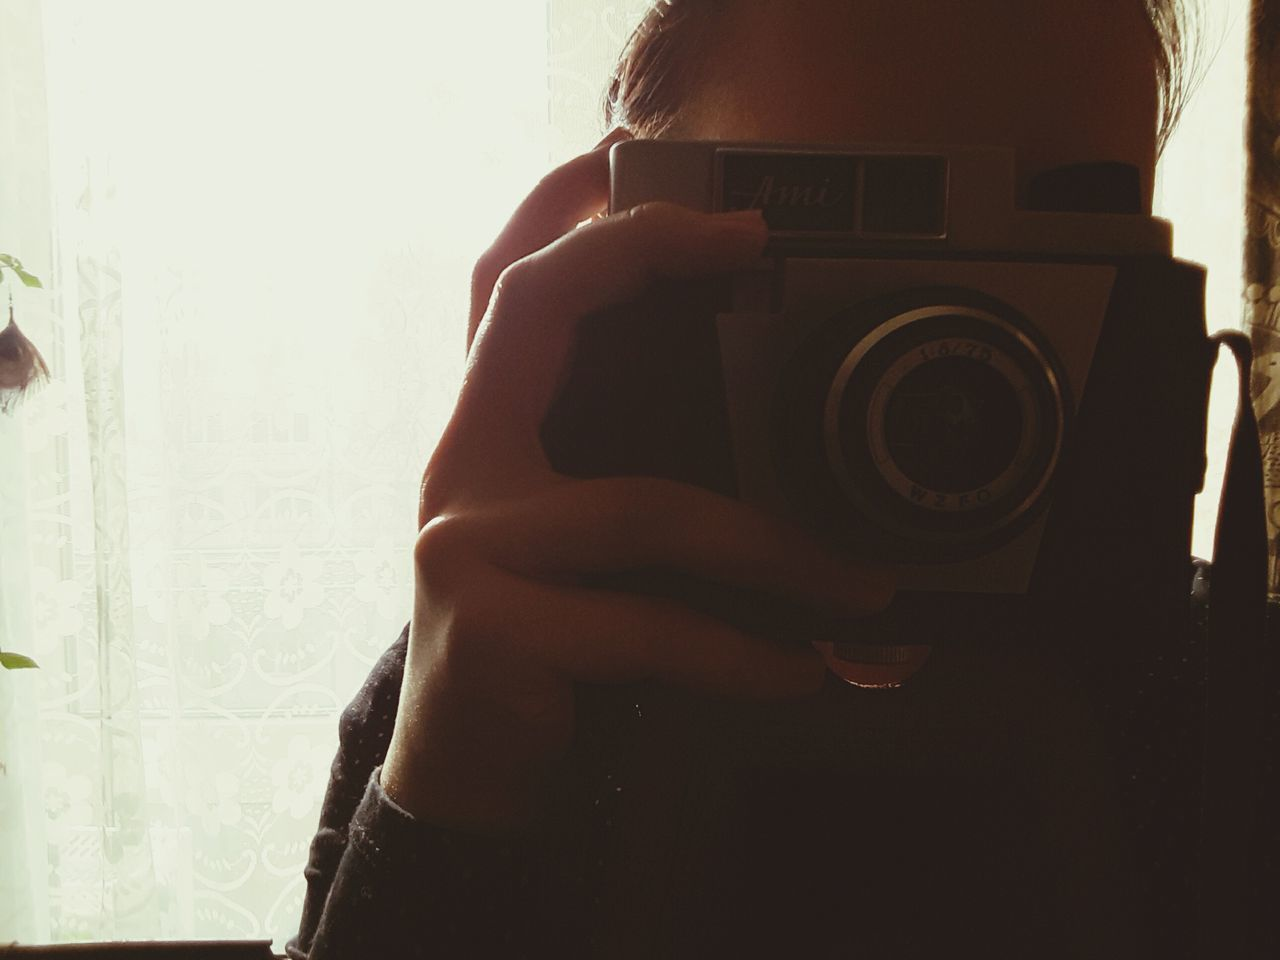 photography themes, photographing, camera - photographic equipment, photographer, holding, digital camera, technology, camera, one person, slr camera, leisure activity, real people, lifestyles, indoors, digital single-lens reflex camera, human hand, close-up, day, people